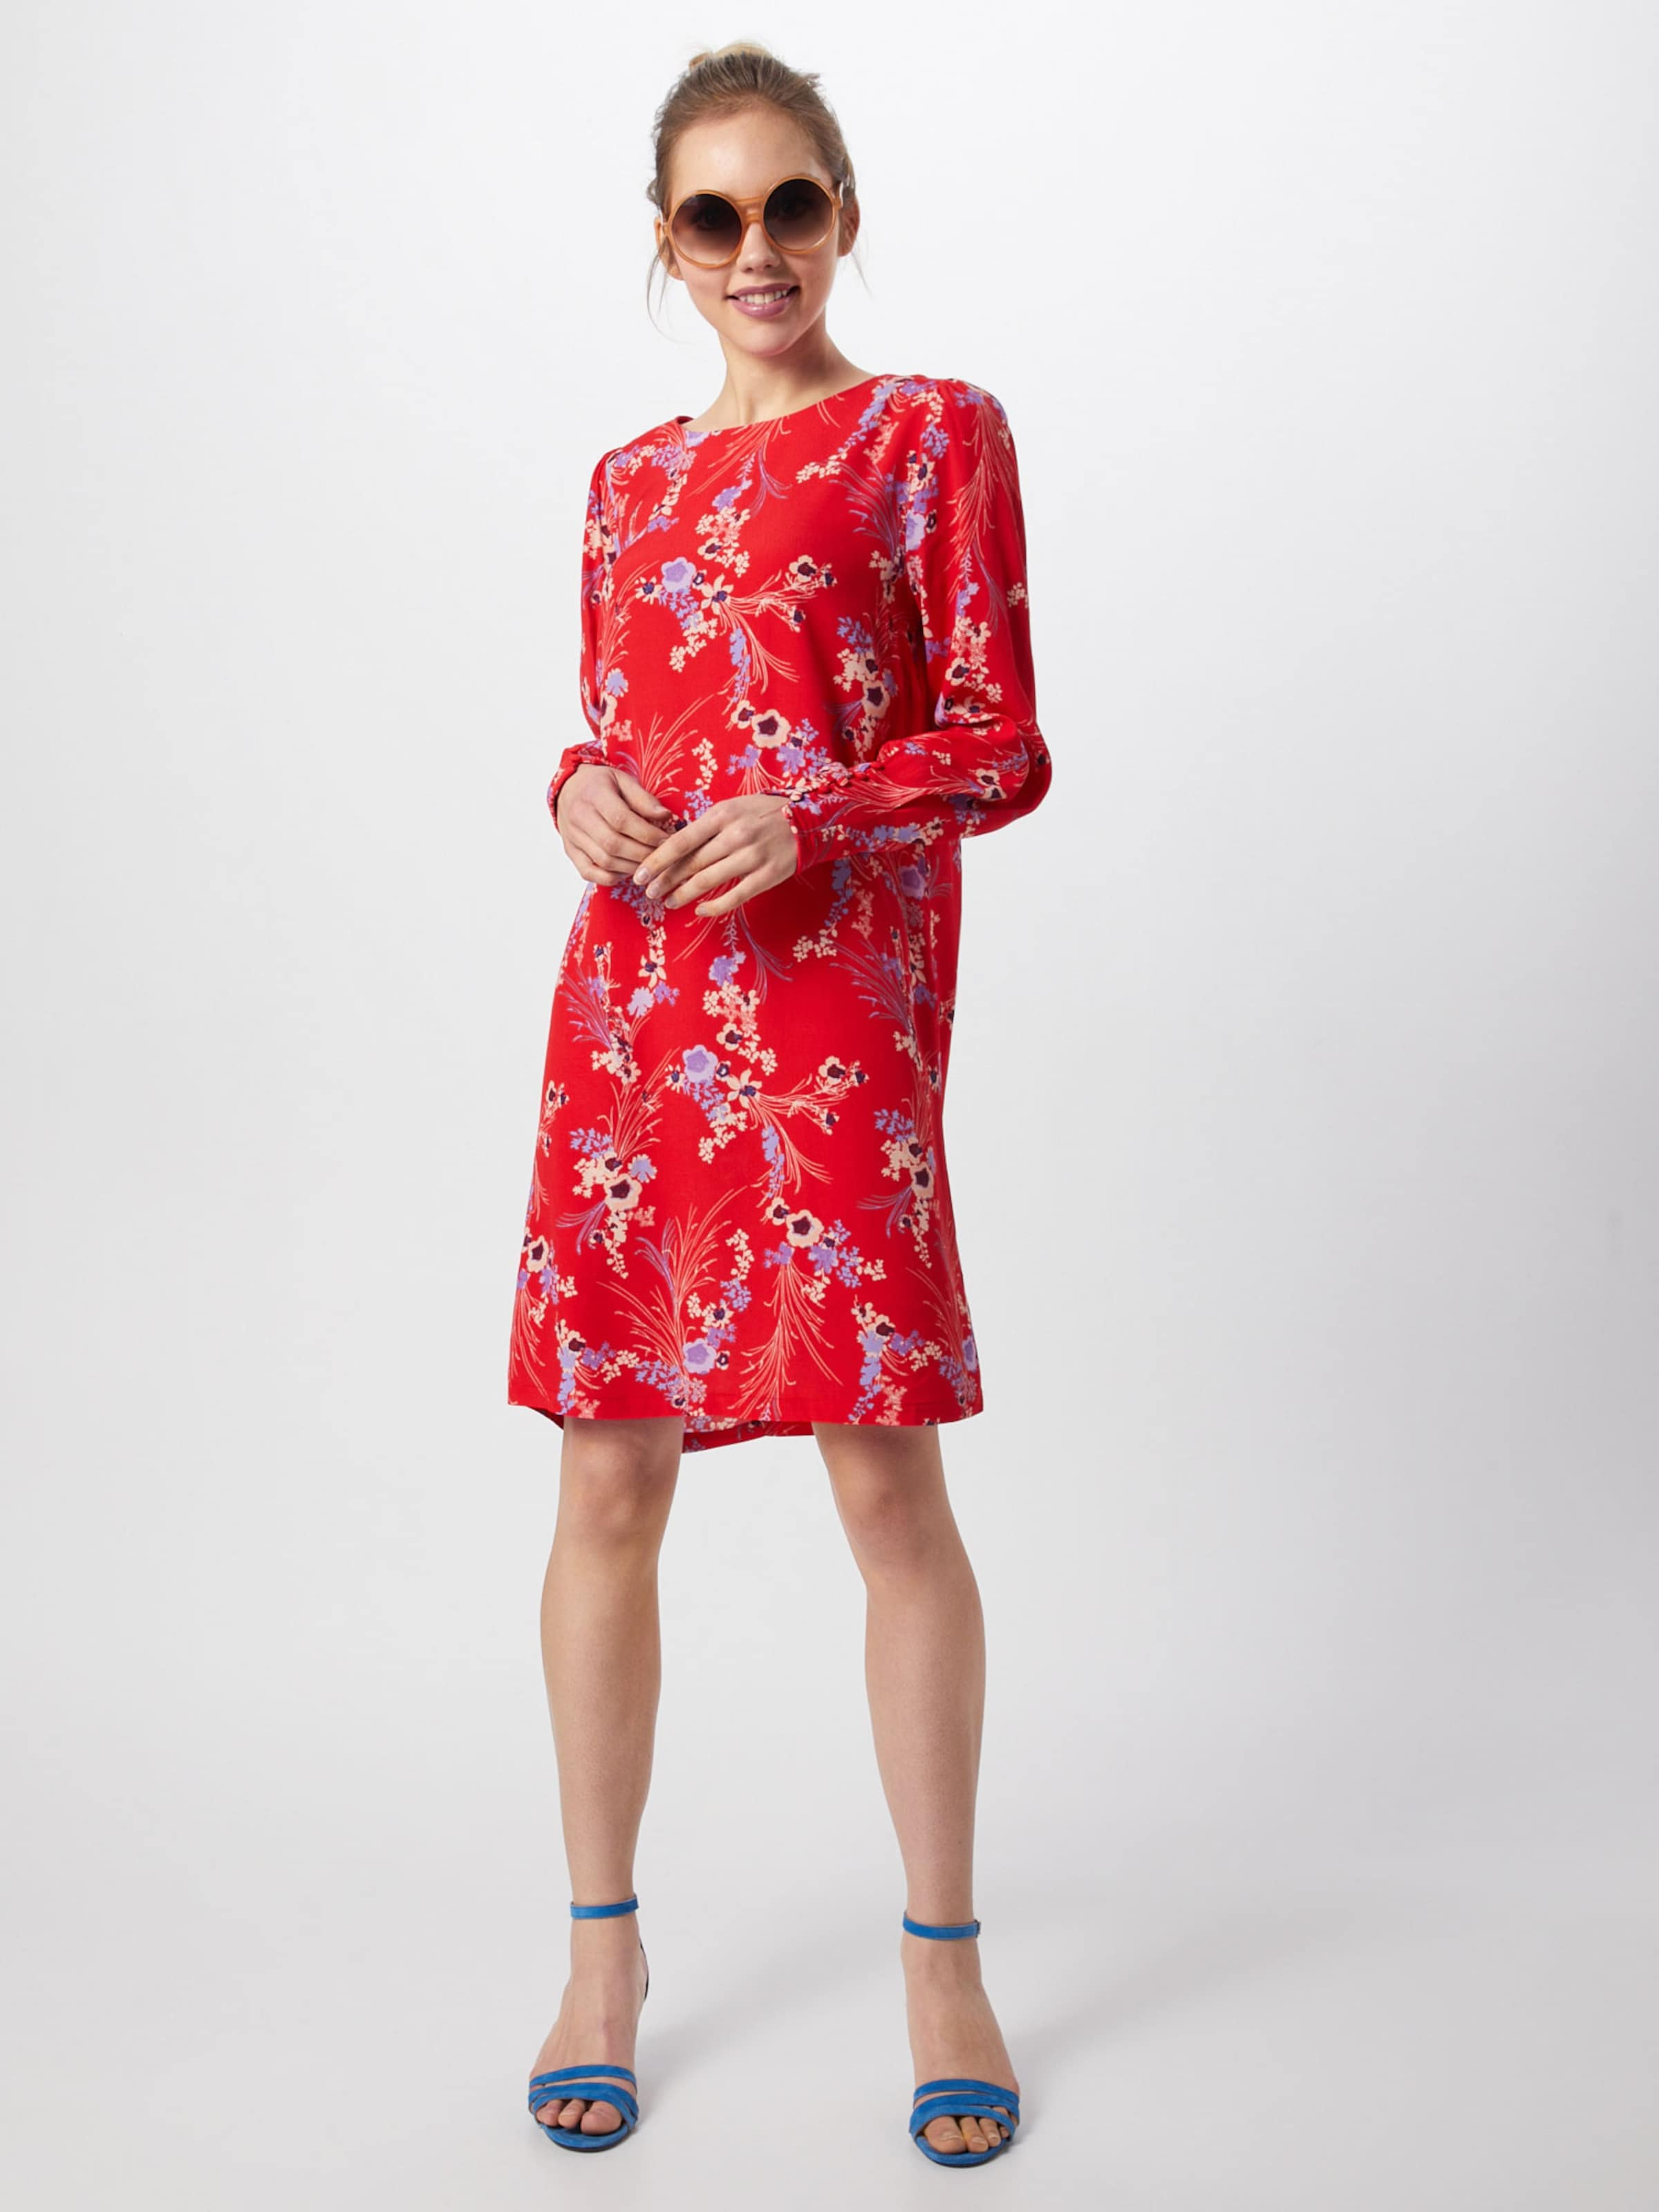 Love' In Kleid Feuerrot Saint Tropez 'red SUGMVLzjqp